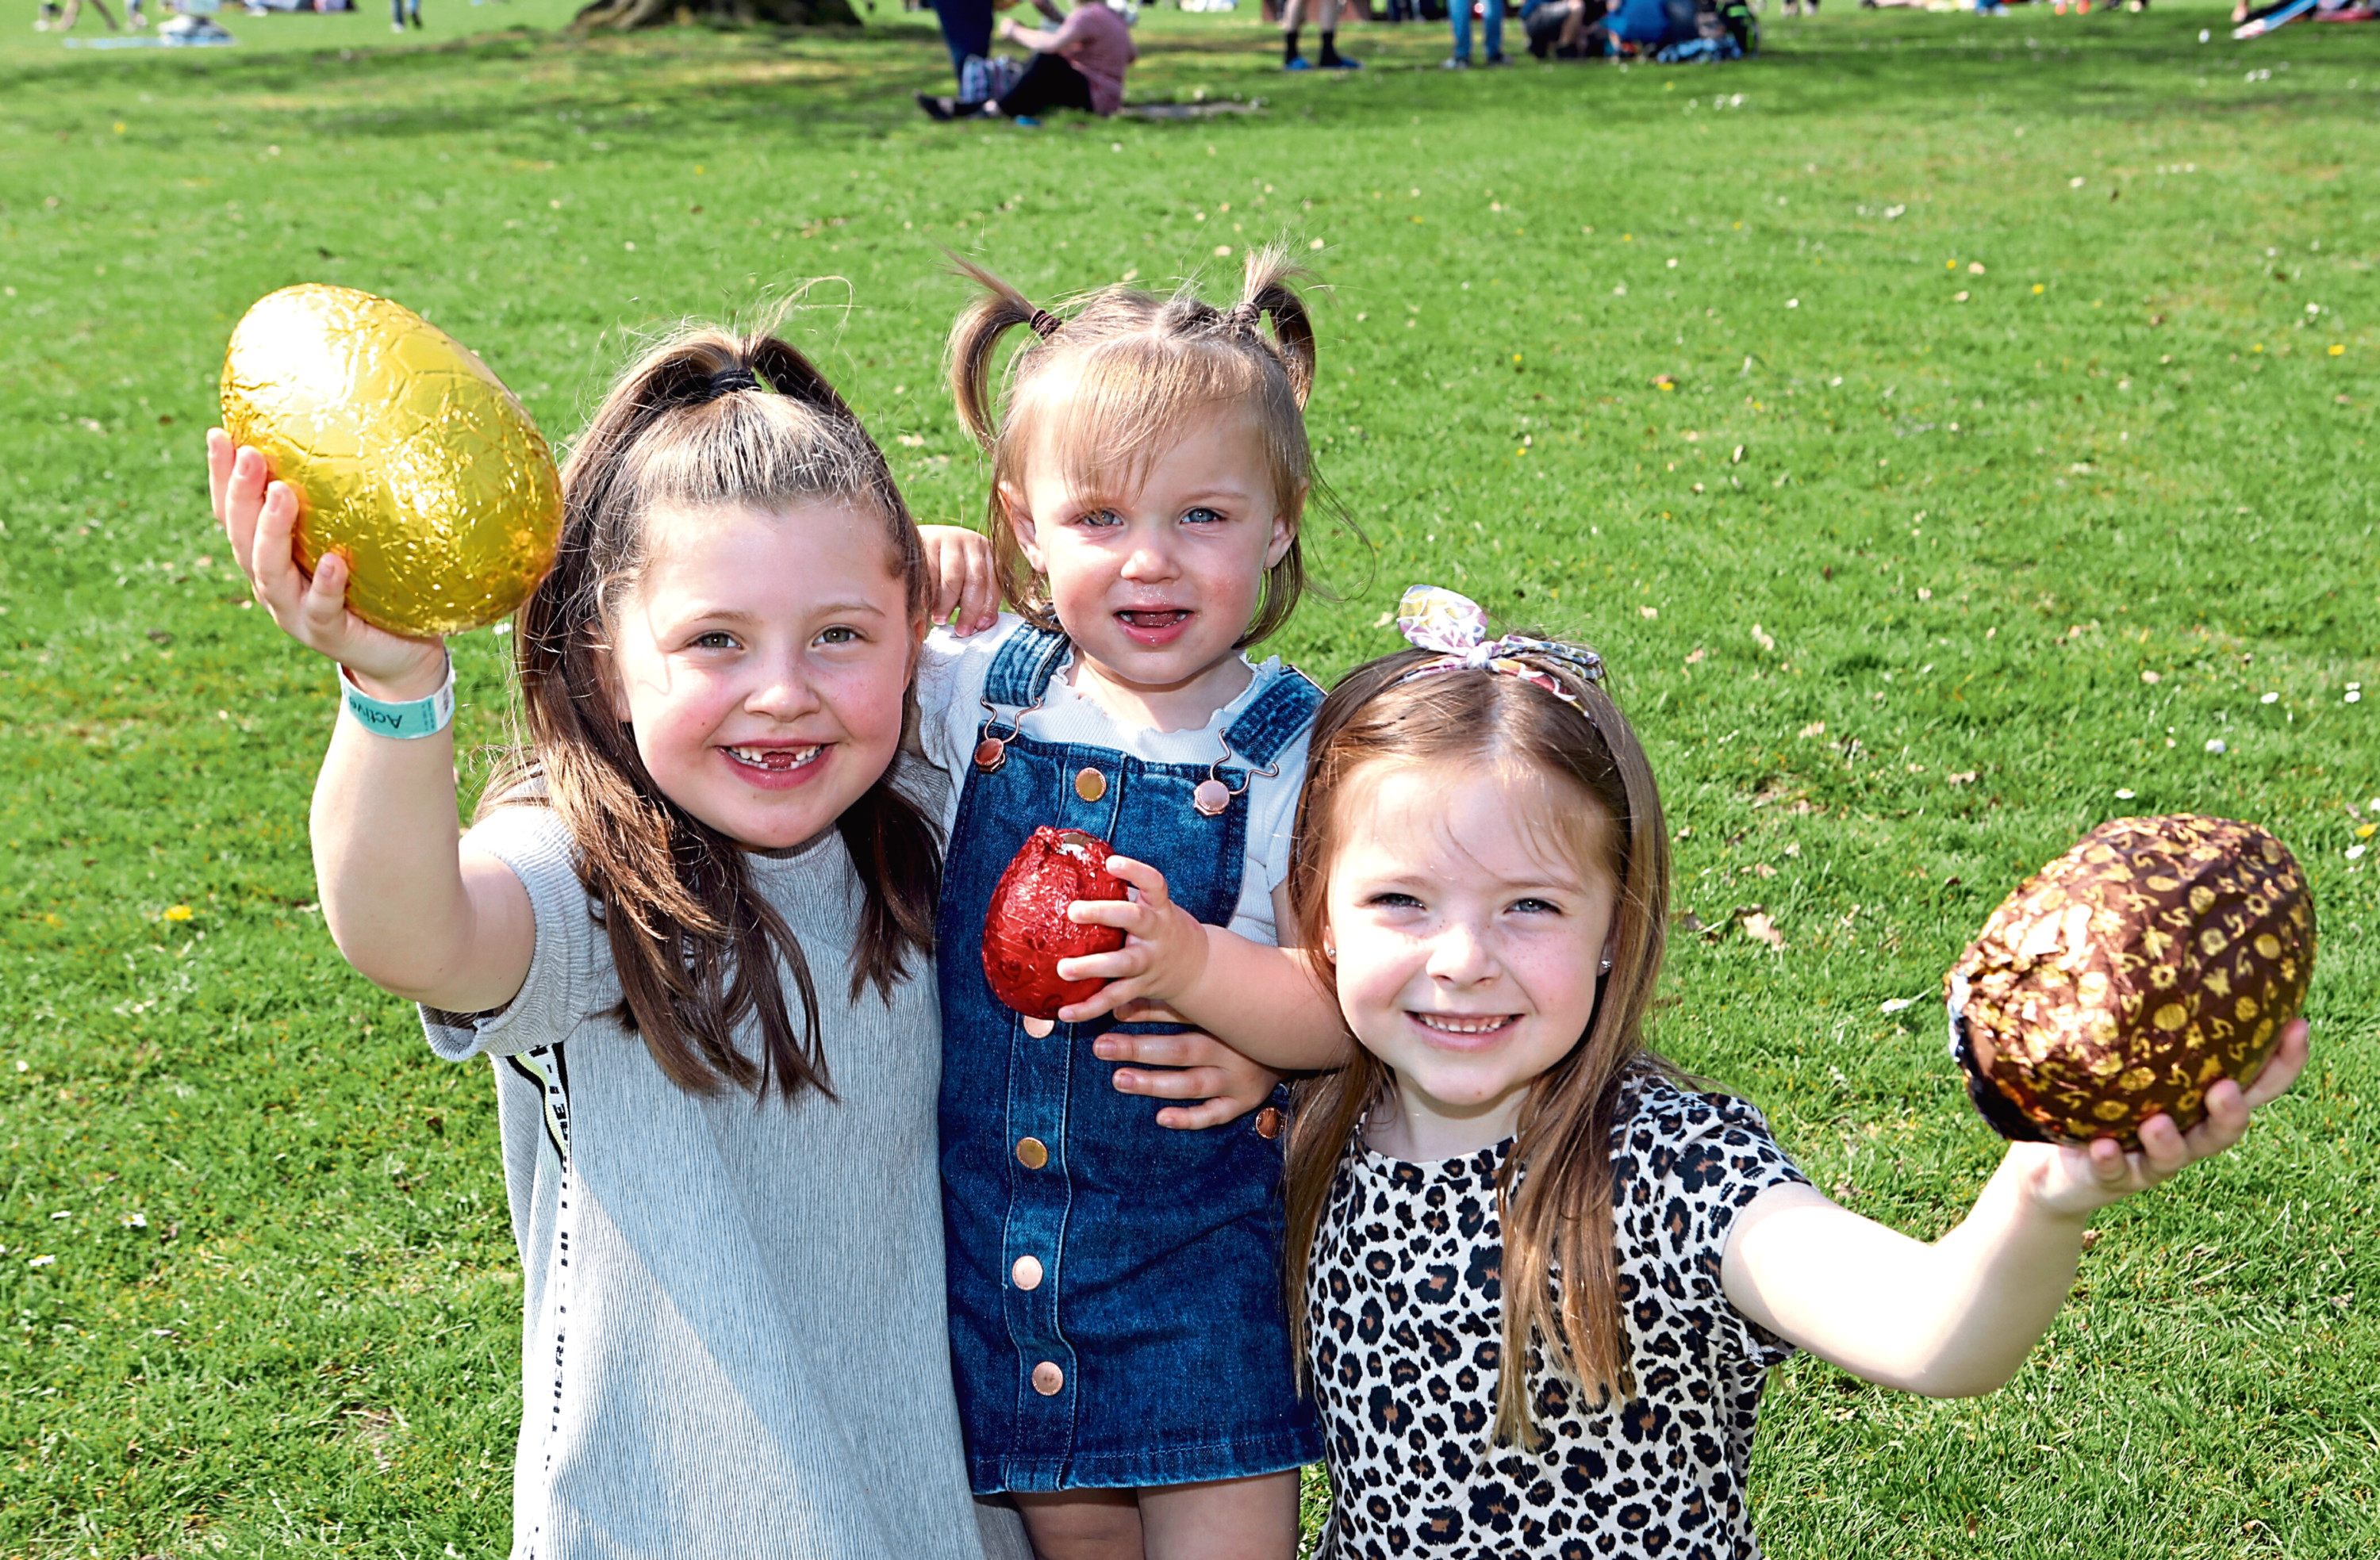 Lexi McLaggan (7), Zahra Scrimgeour (1) and Laya Alexander (7) from Clatto Woods